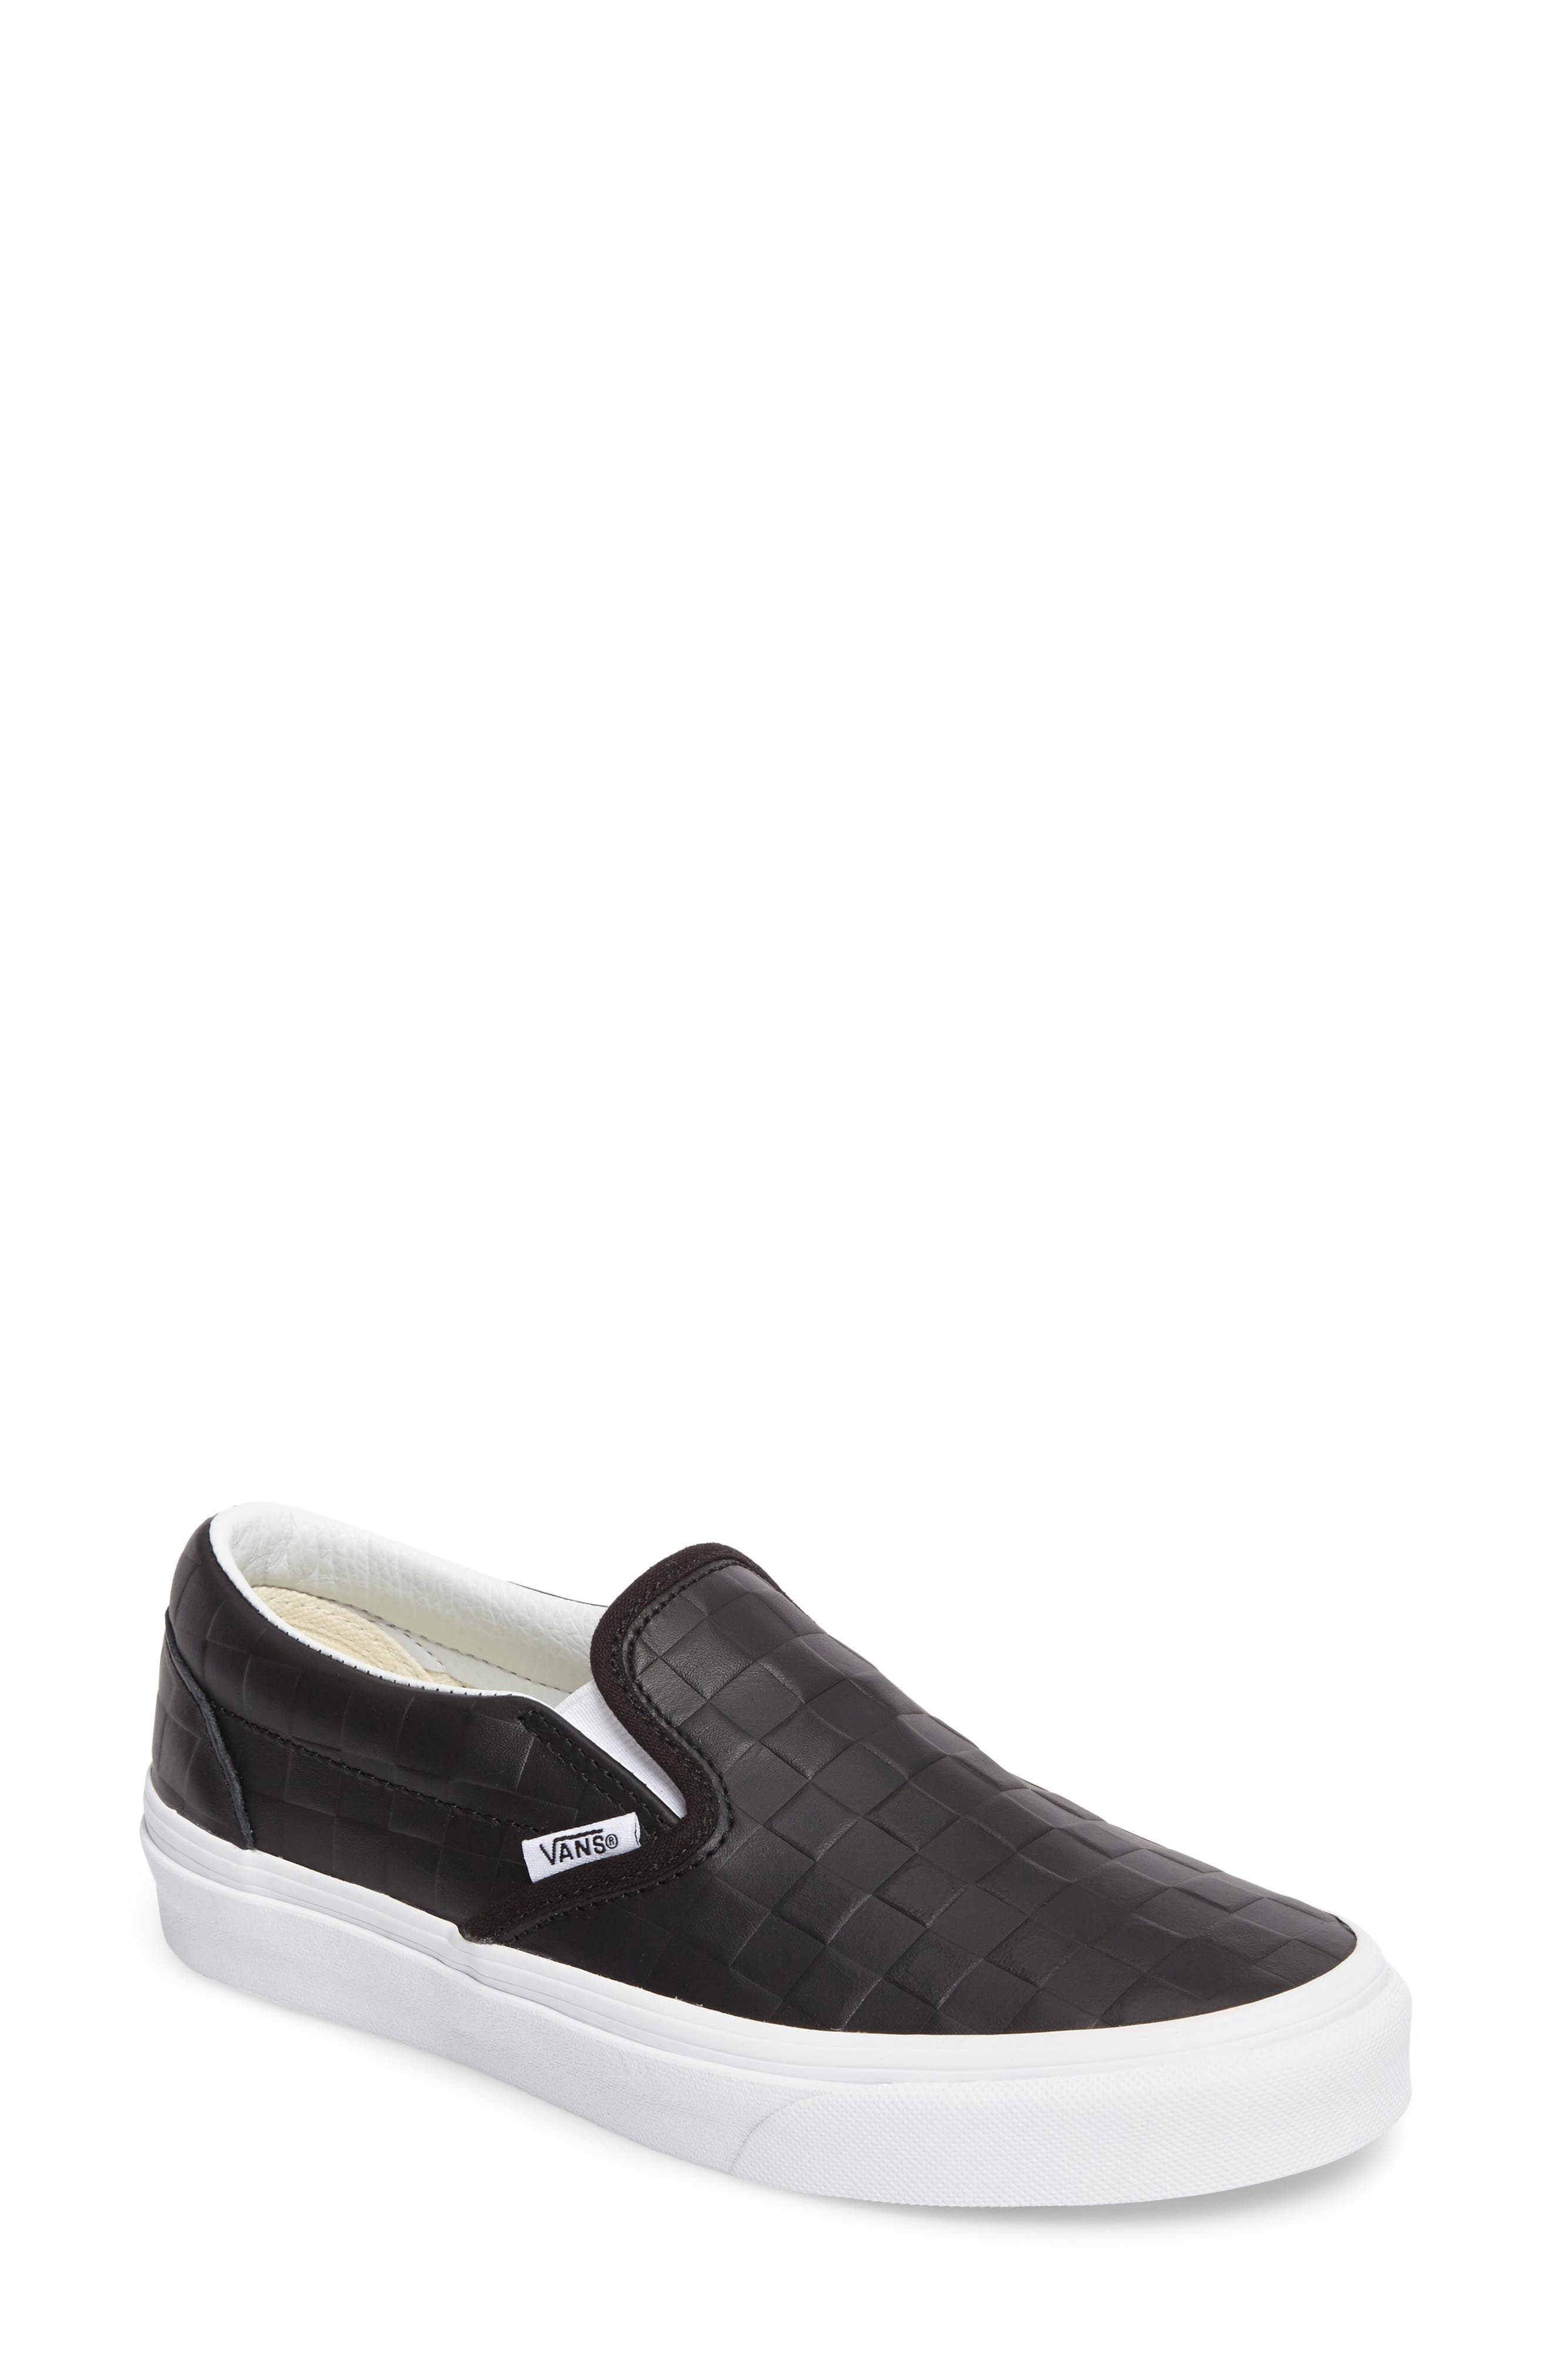 Classic Slip-On Sneaker,                         Main,                         color, Checkerboard/ Black